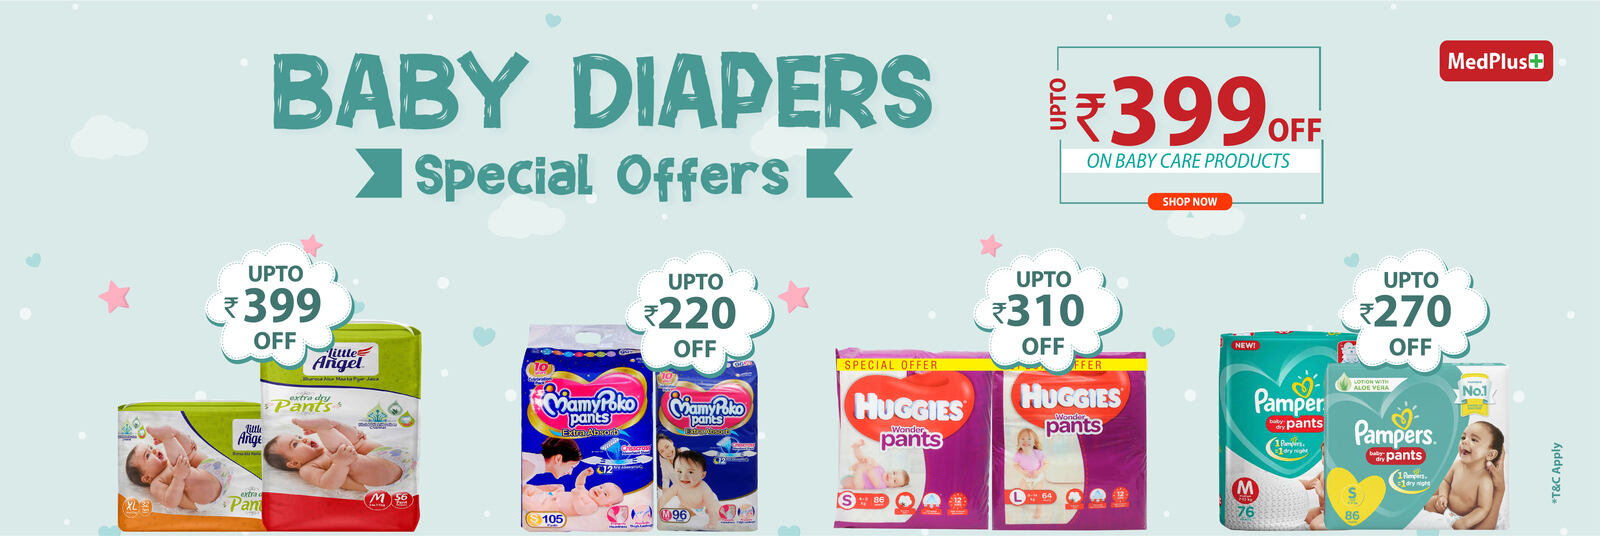 Upto Rs 399 Off Baby Diapers